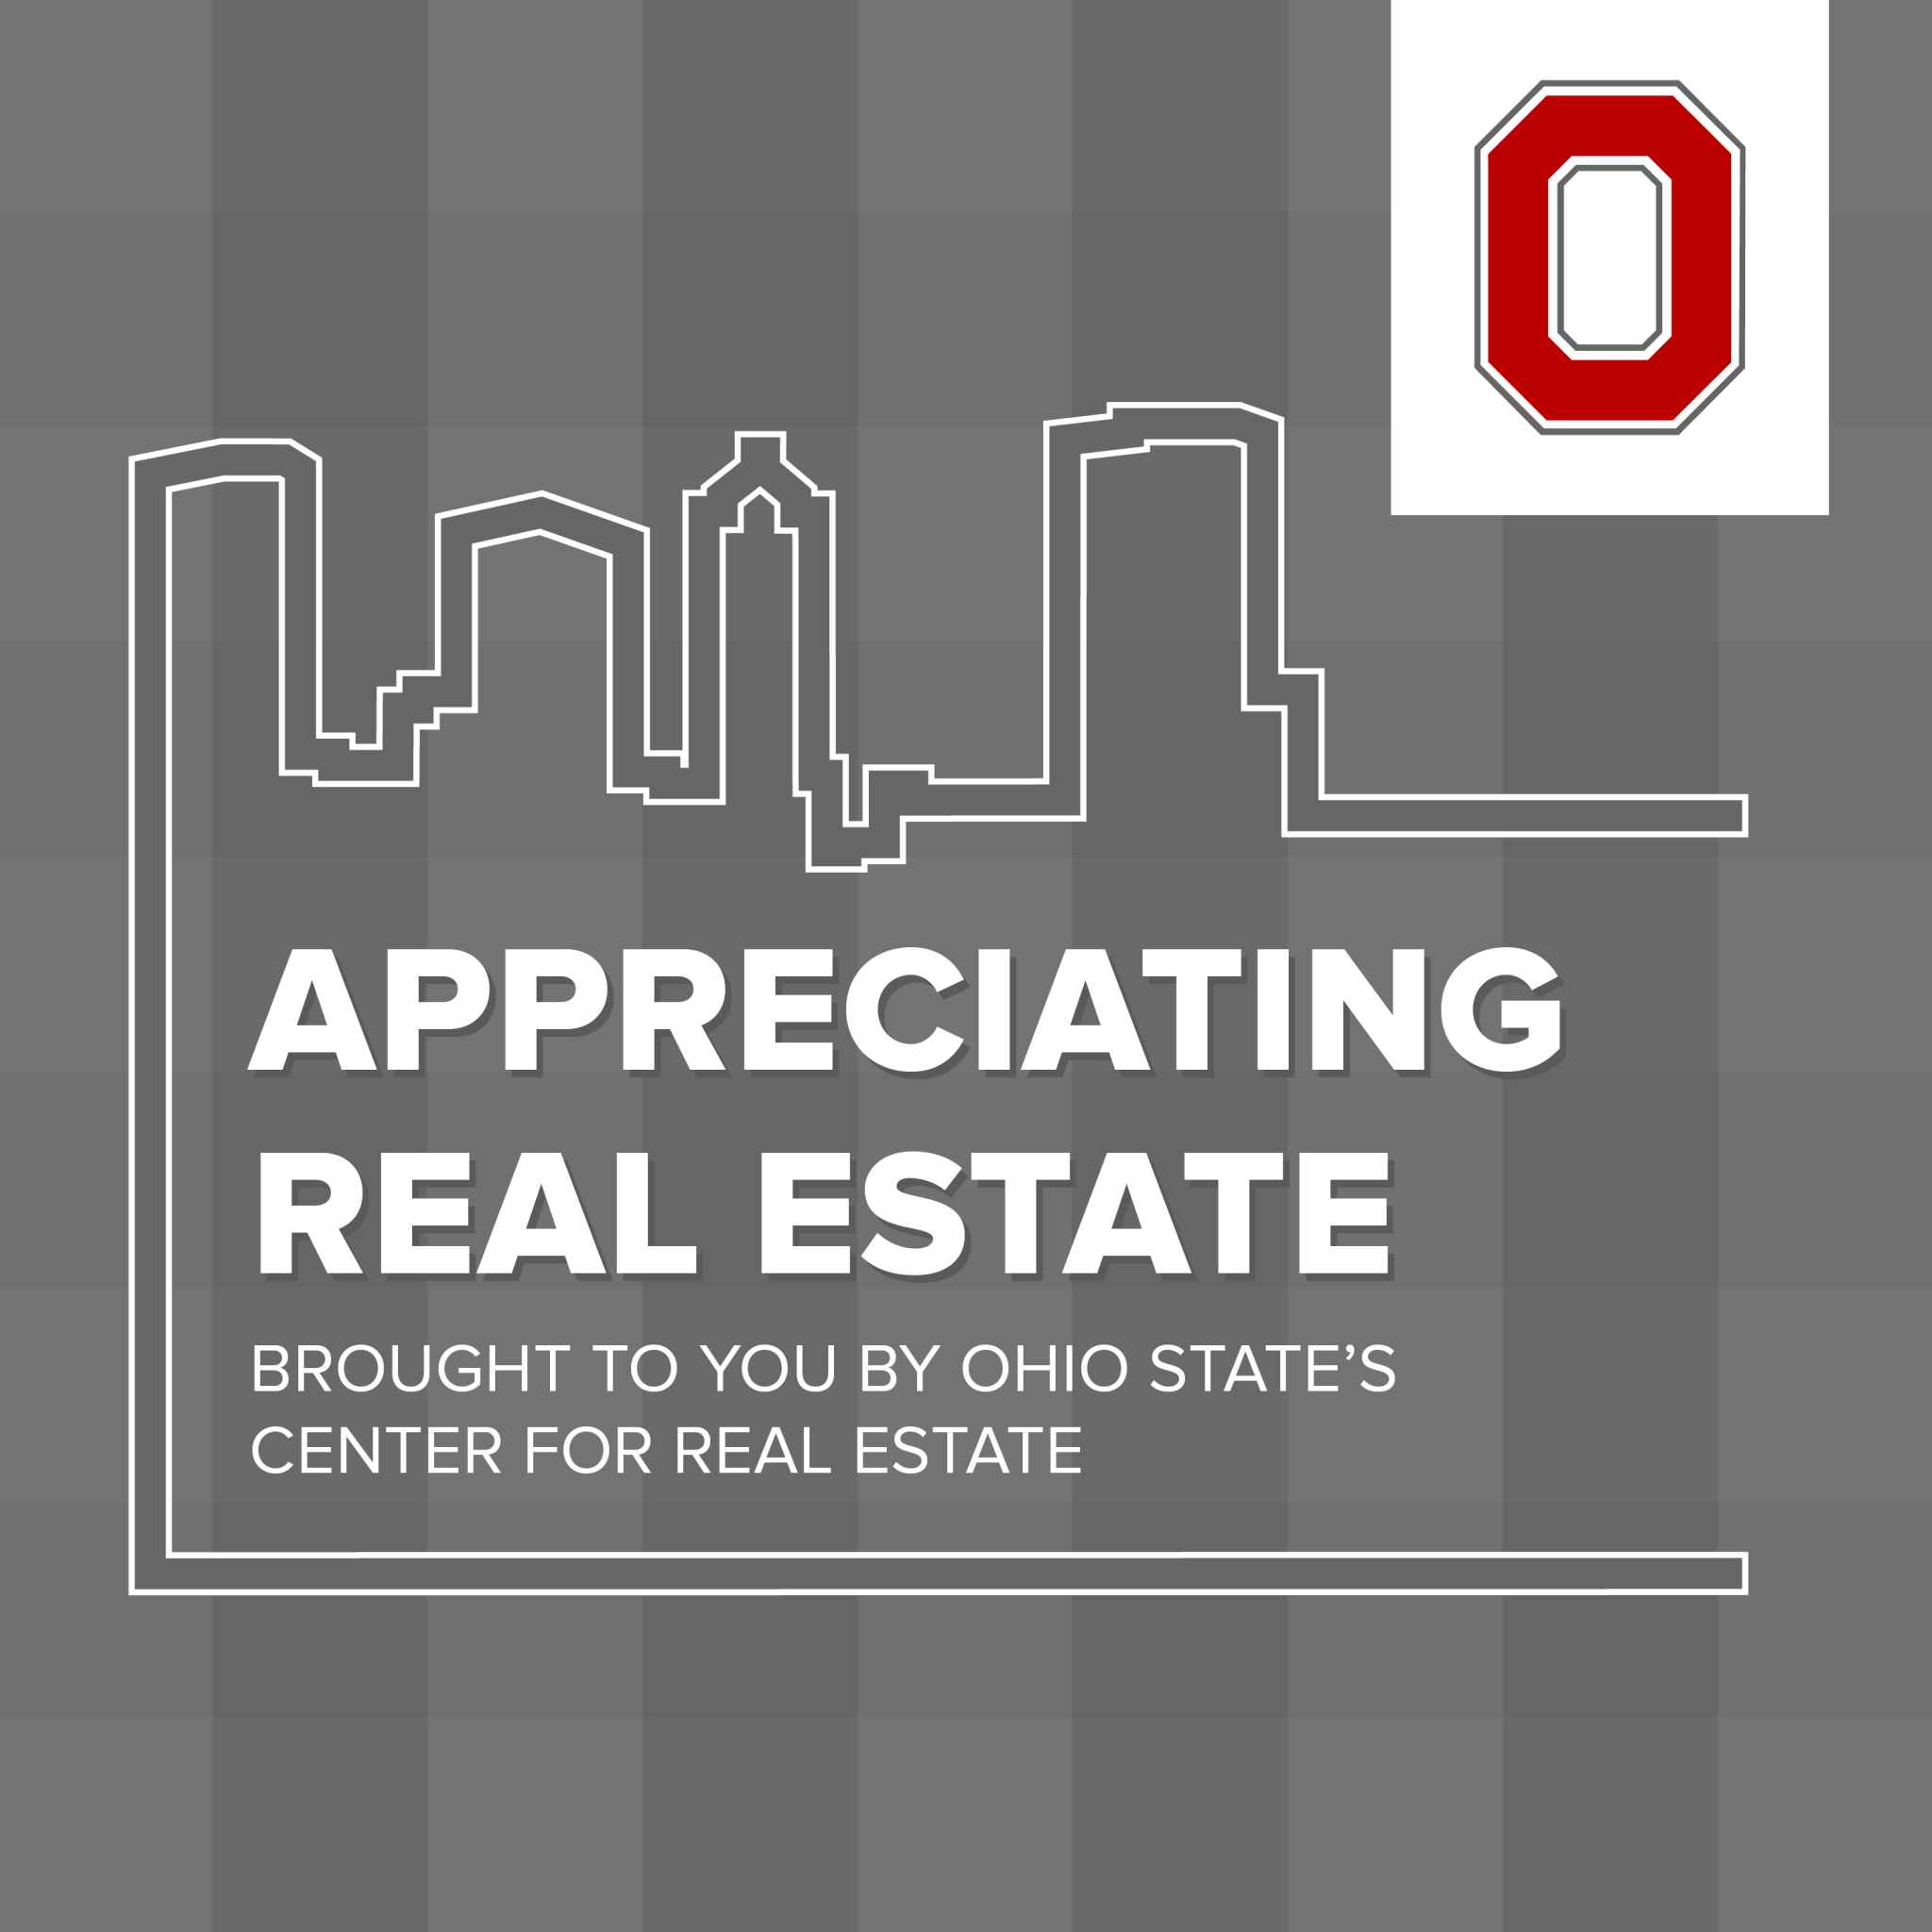 Appreciating Real Estate